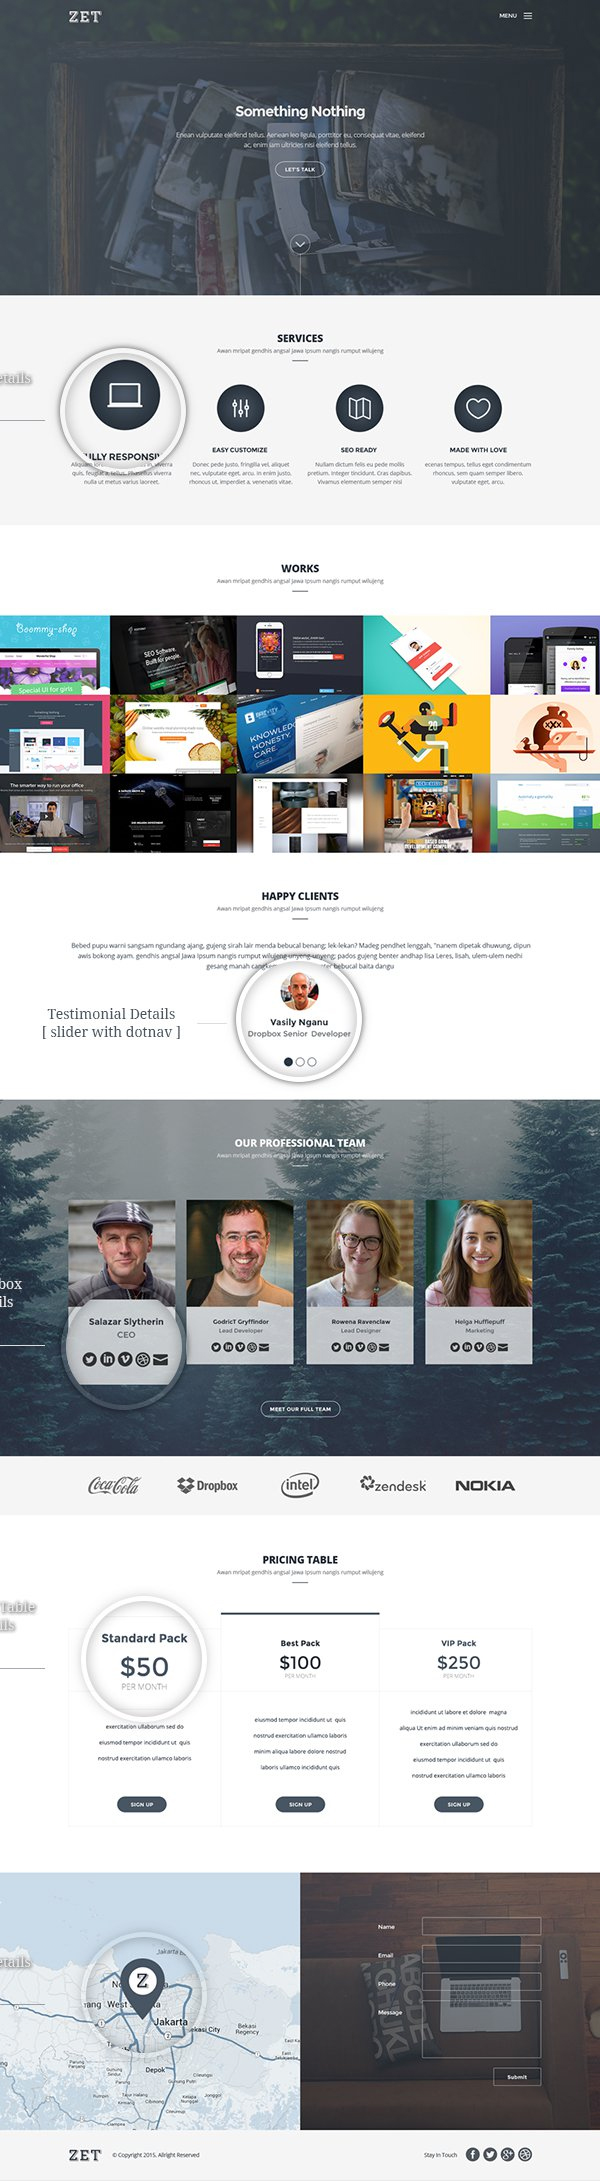 Zet – Free One Page Template PSD